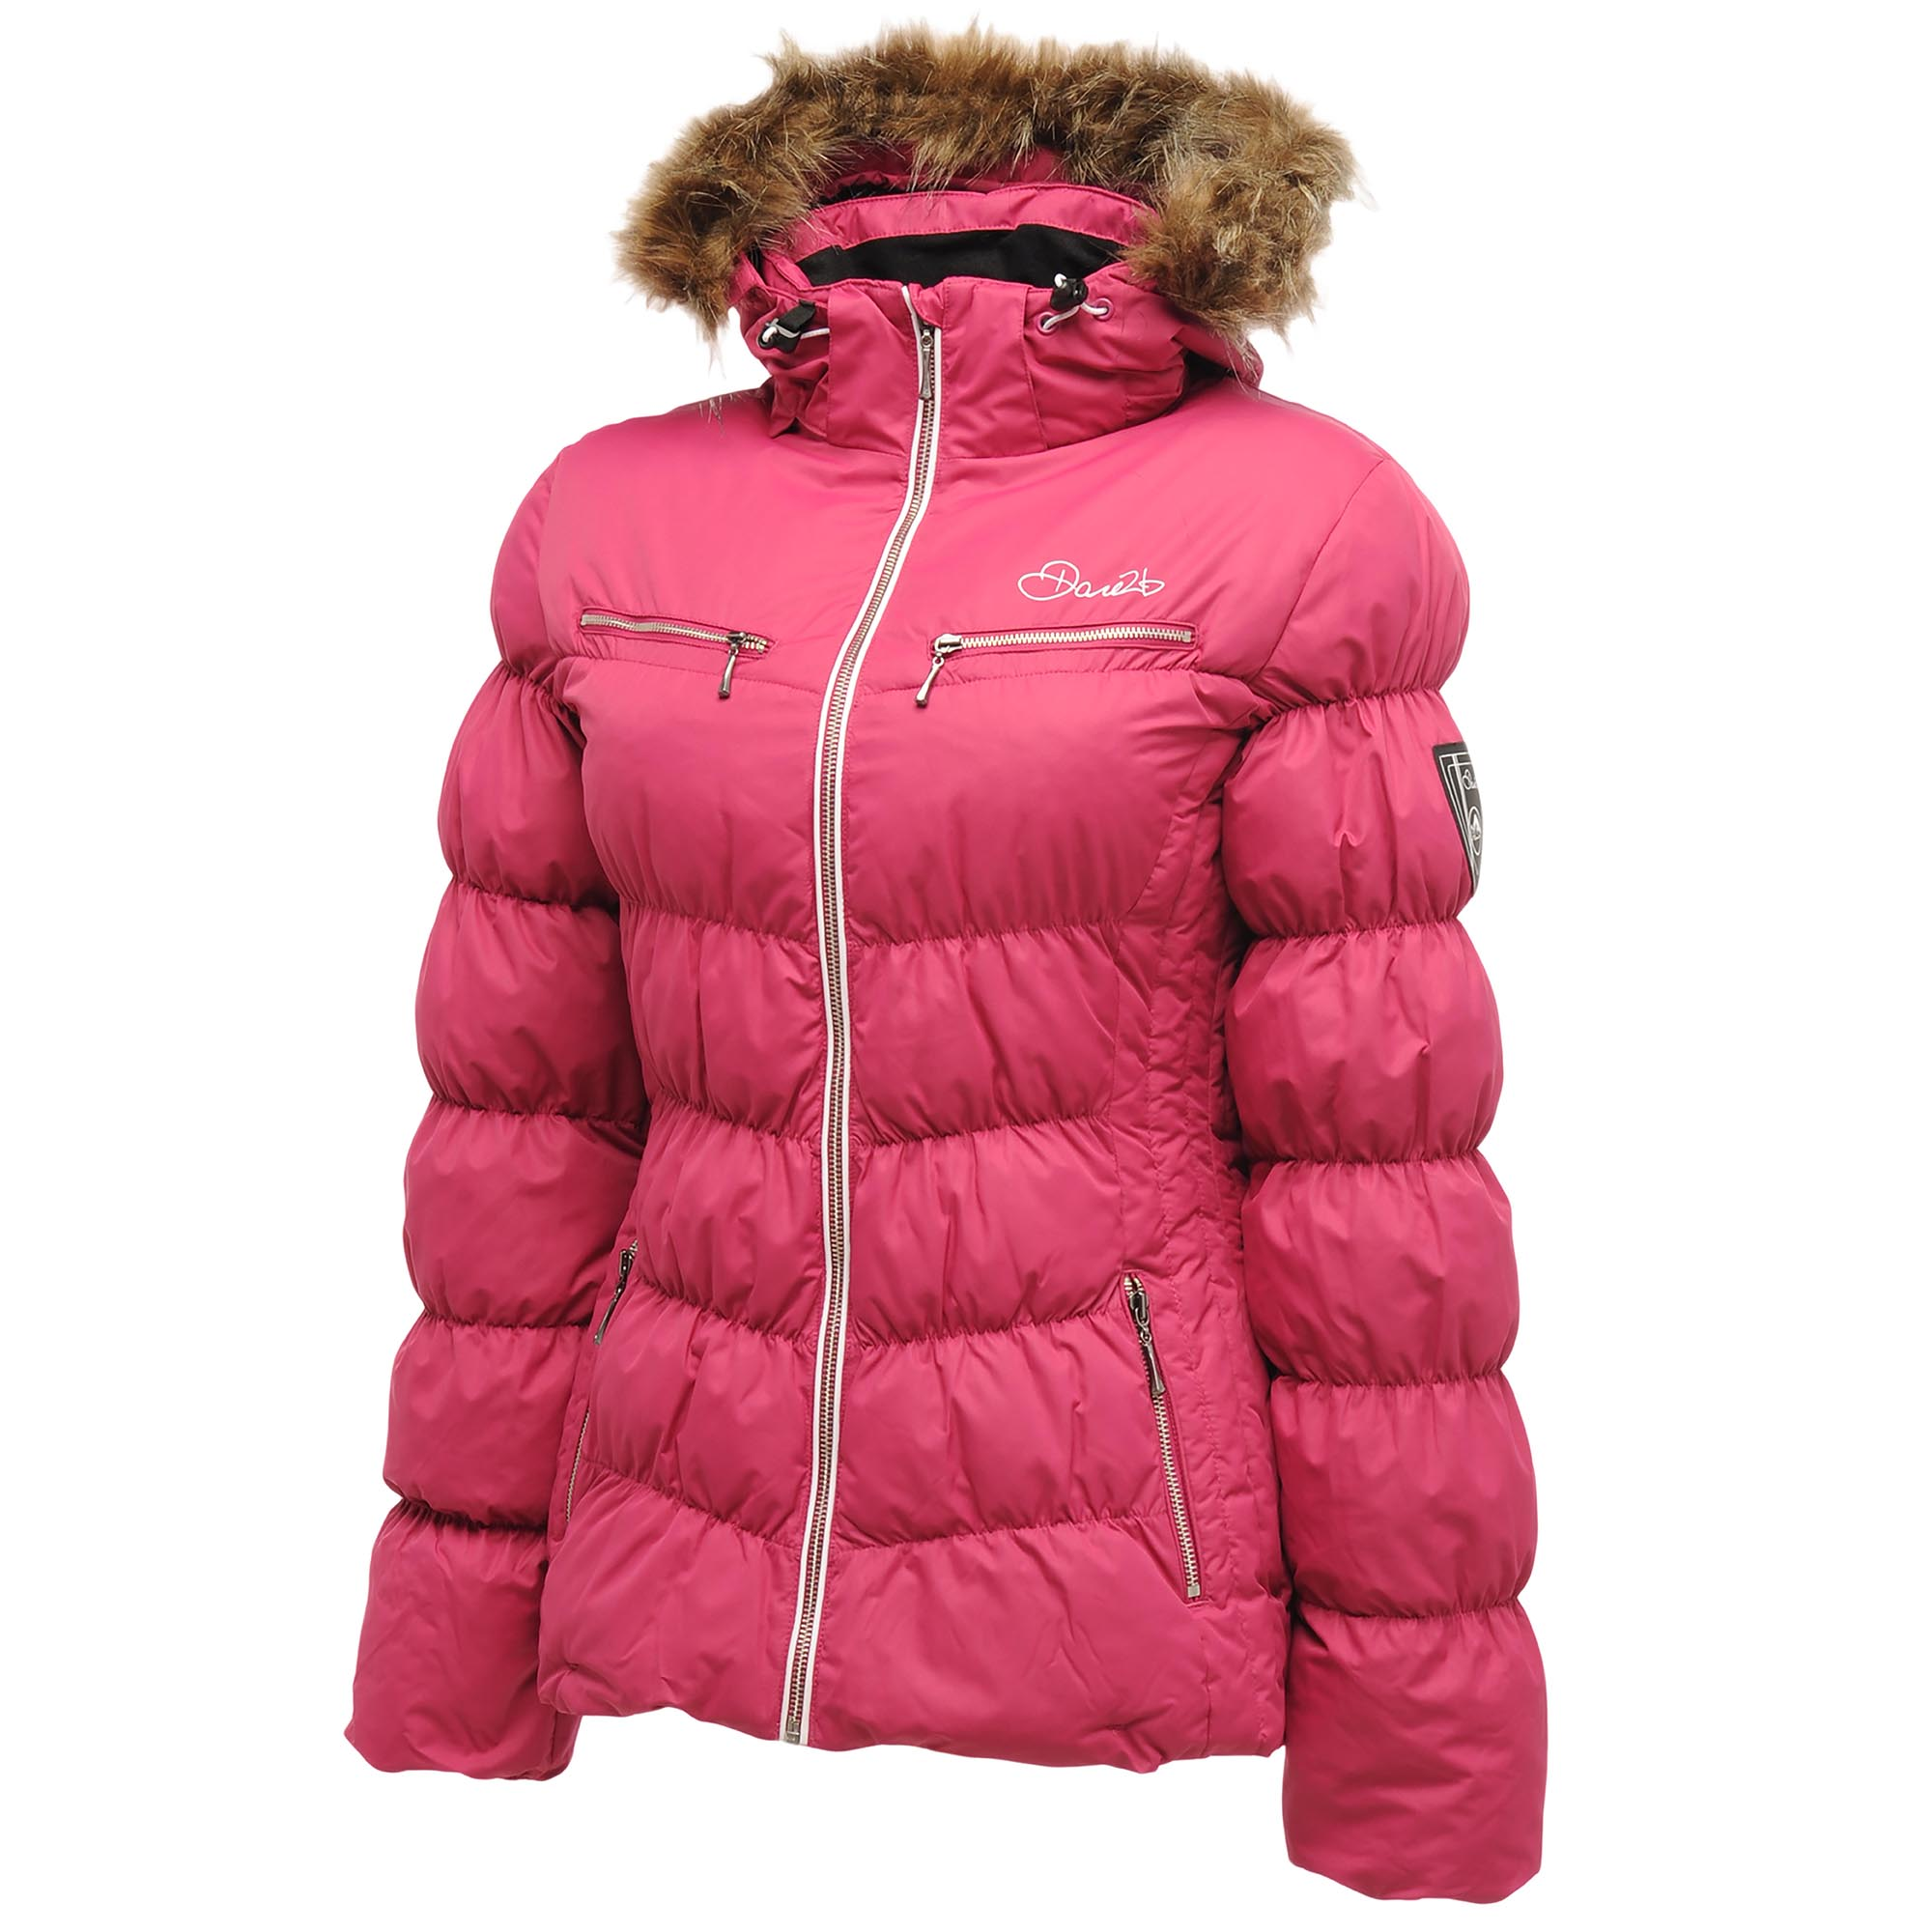 Enjoy our collection of après-ski jackets for women. Trendy, stylish, casus classic, sober or eccentric, our jackets are for all tastes and for all budgets. You can wear them in the resort after skiing, in the city, on weekends, in the mountains or even in the countryside.